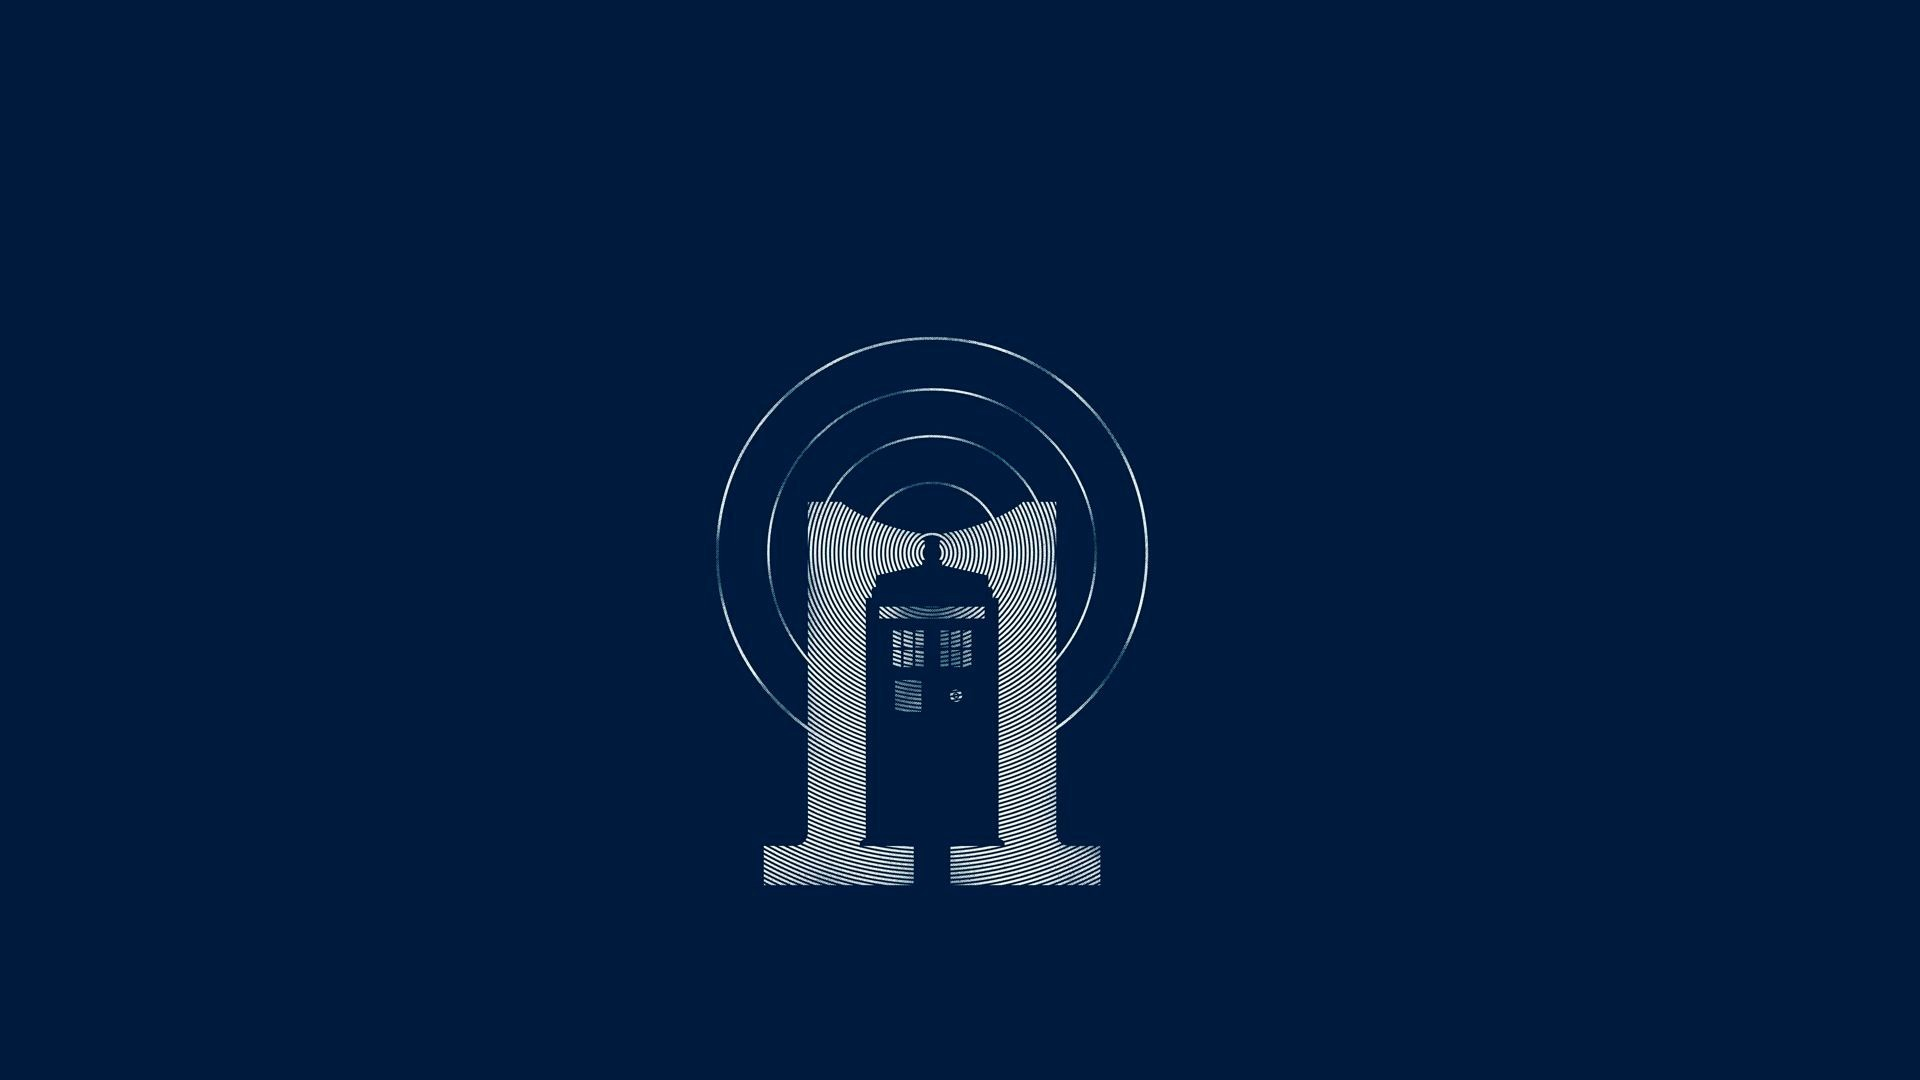 px Free download doctor who wallpaper by Dudu Walls for –  pocketfullofgrace.com